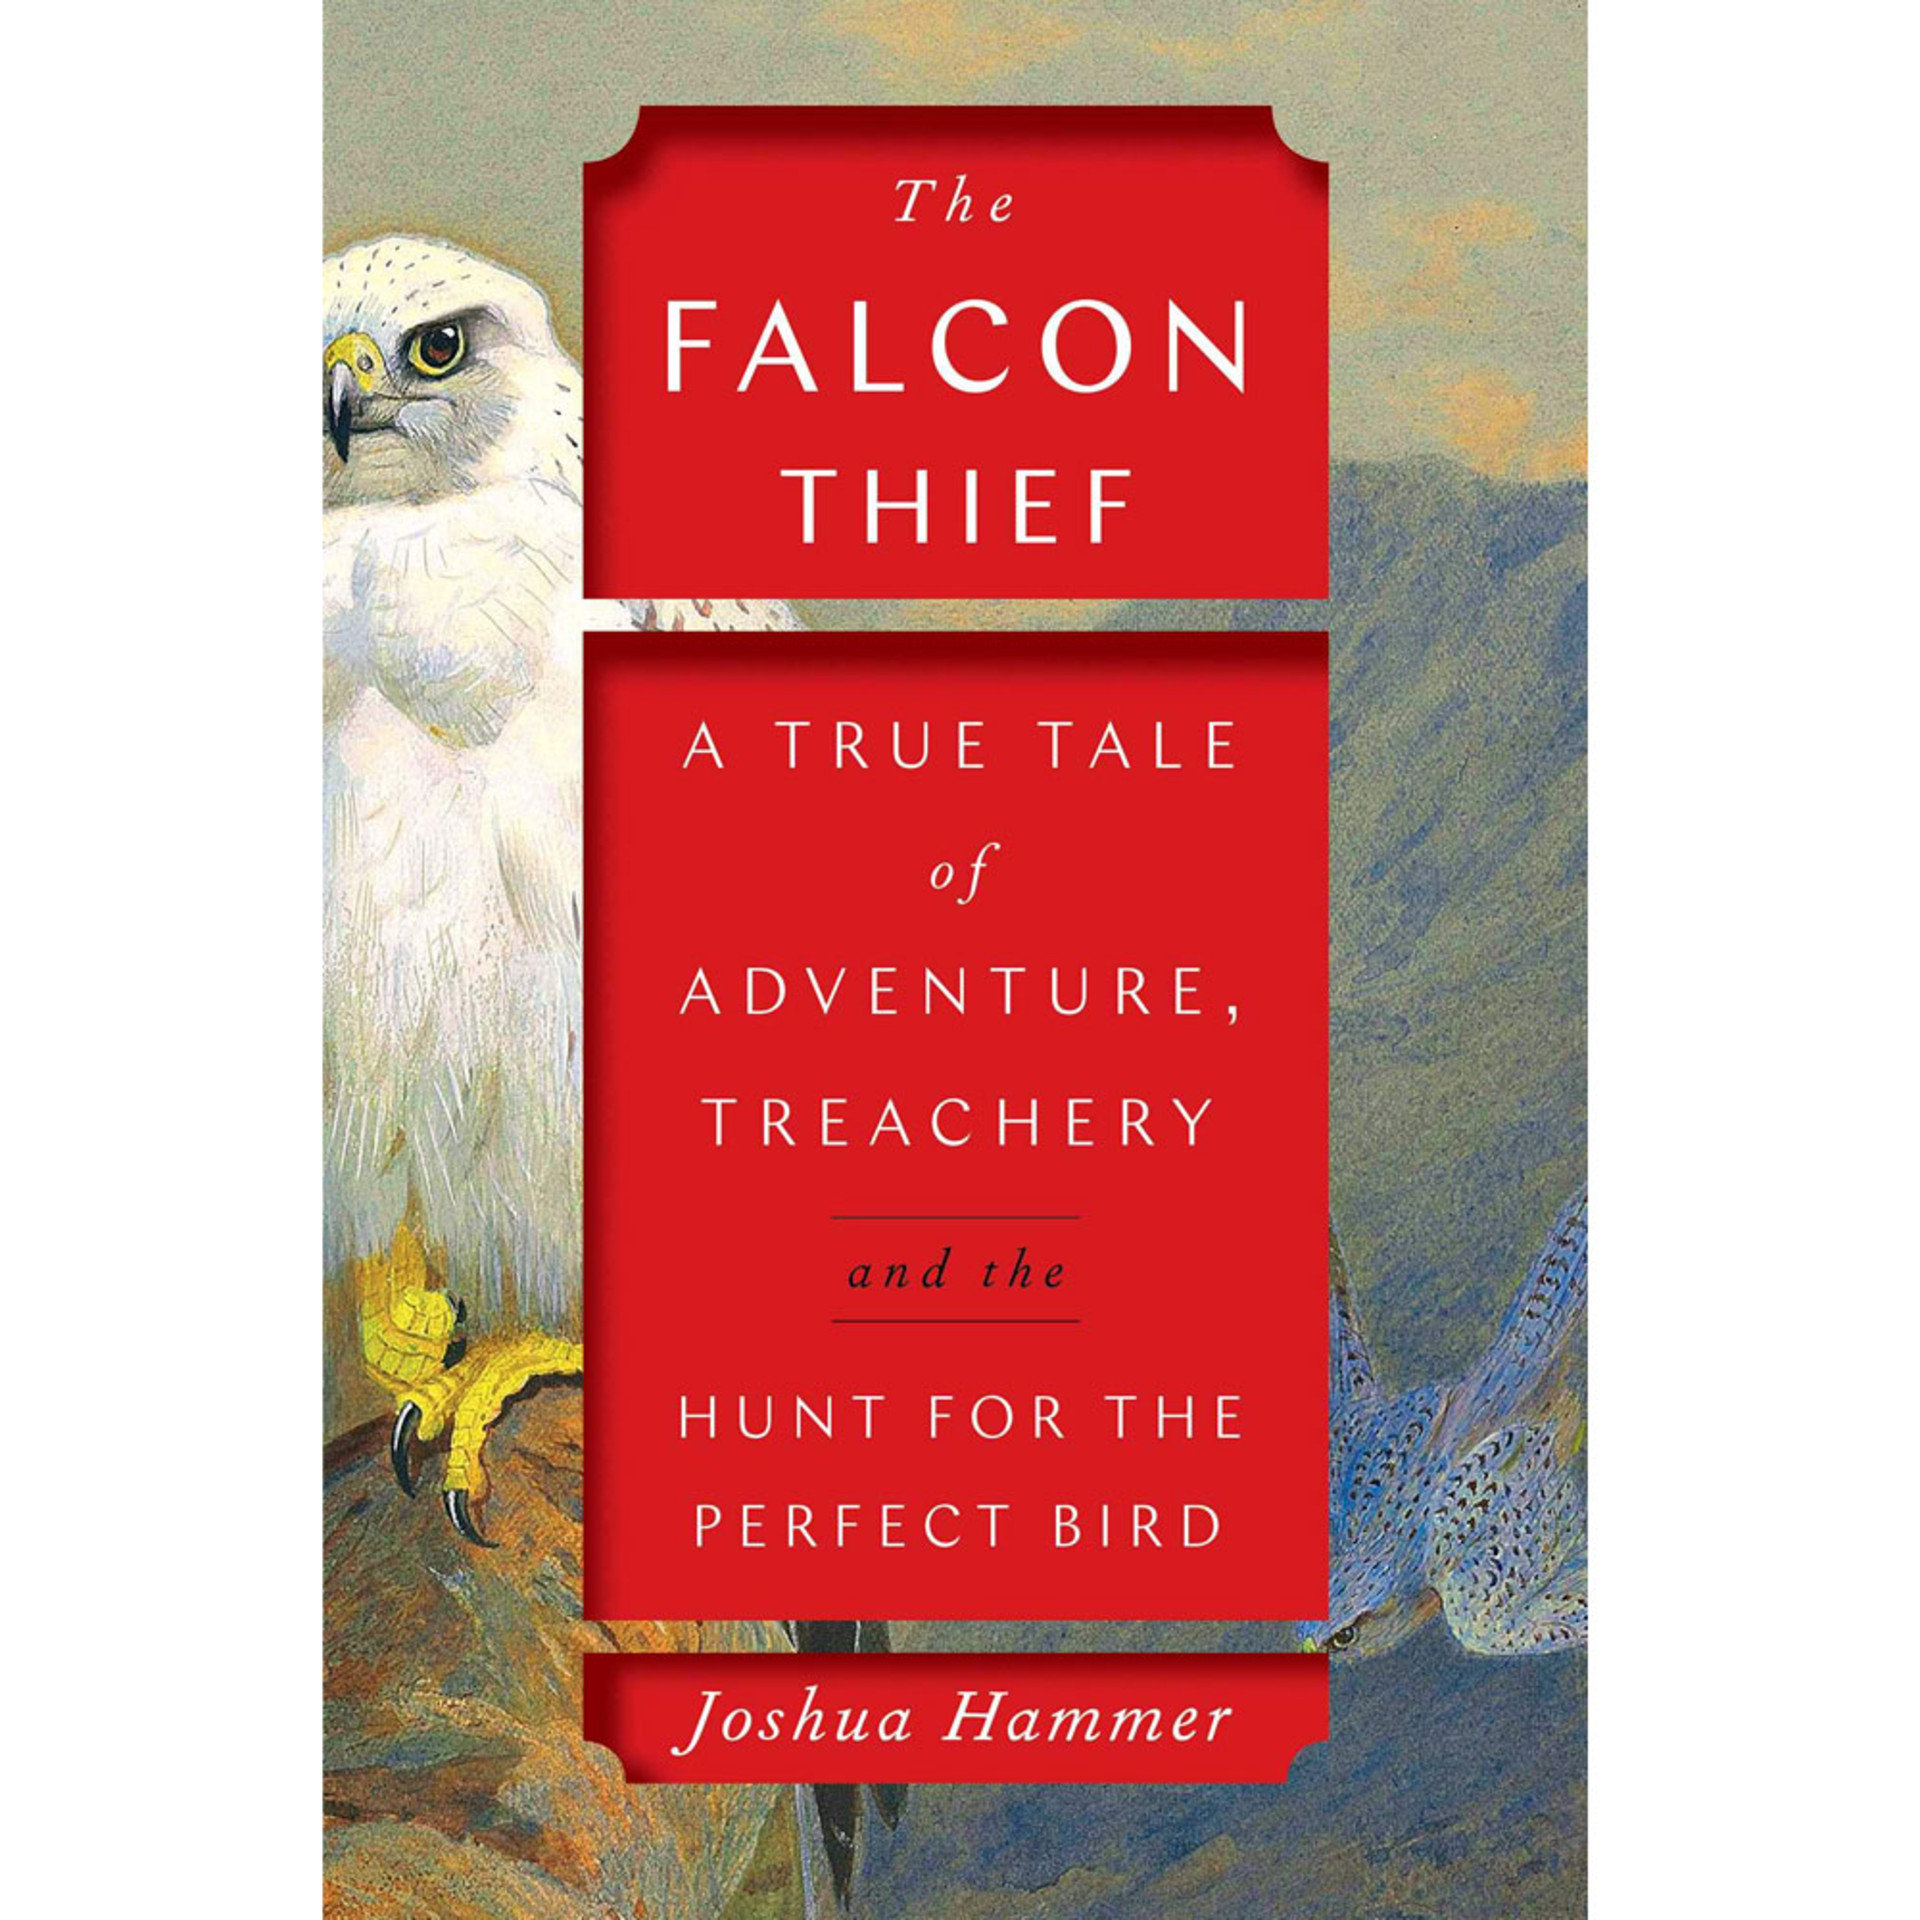 The Falcon Thief: A True Tale of Adventure, Treachery, and the Hunt for the Perfect Bird by Joshua Hammer